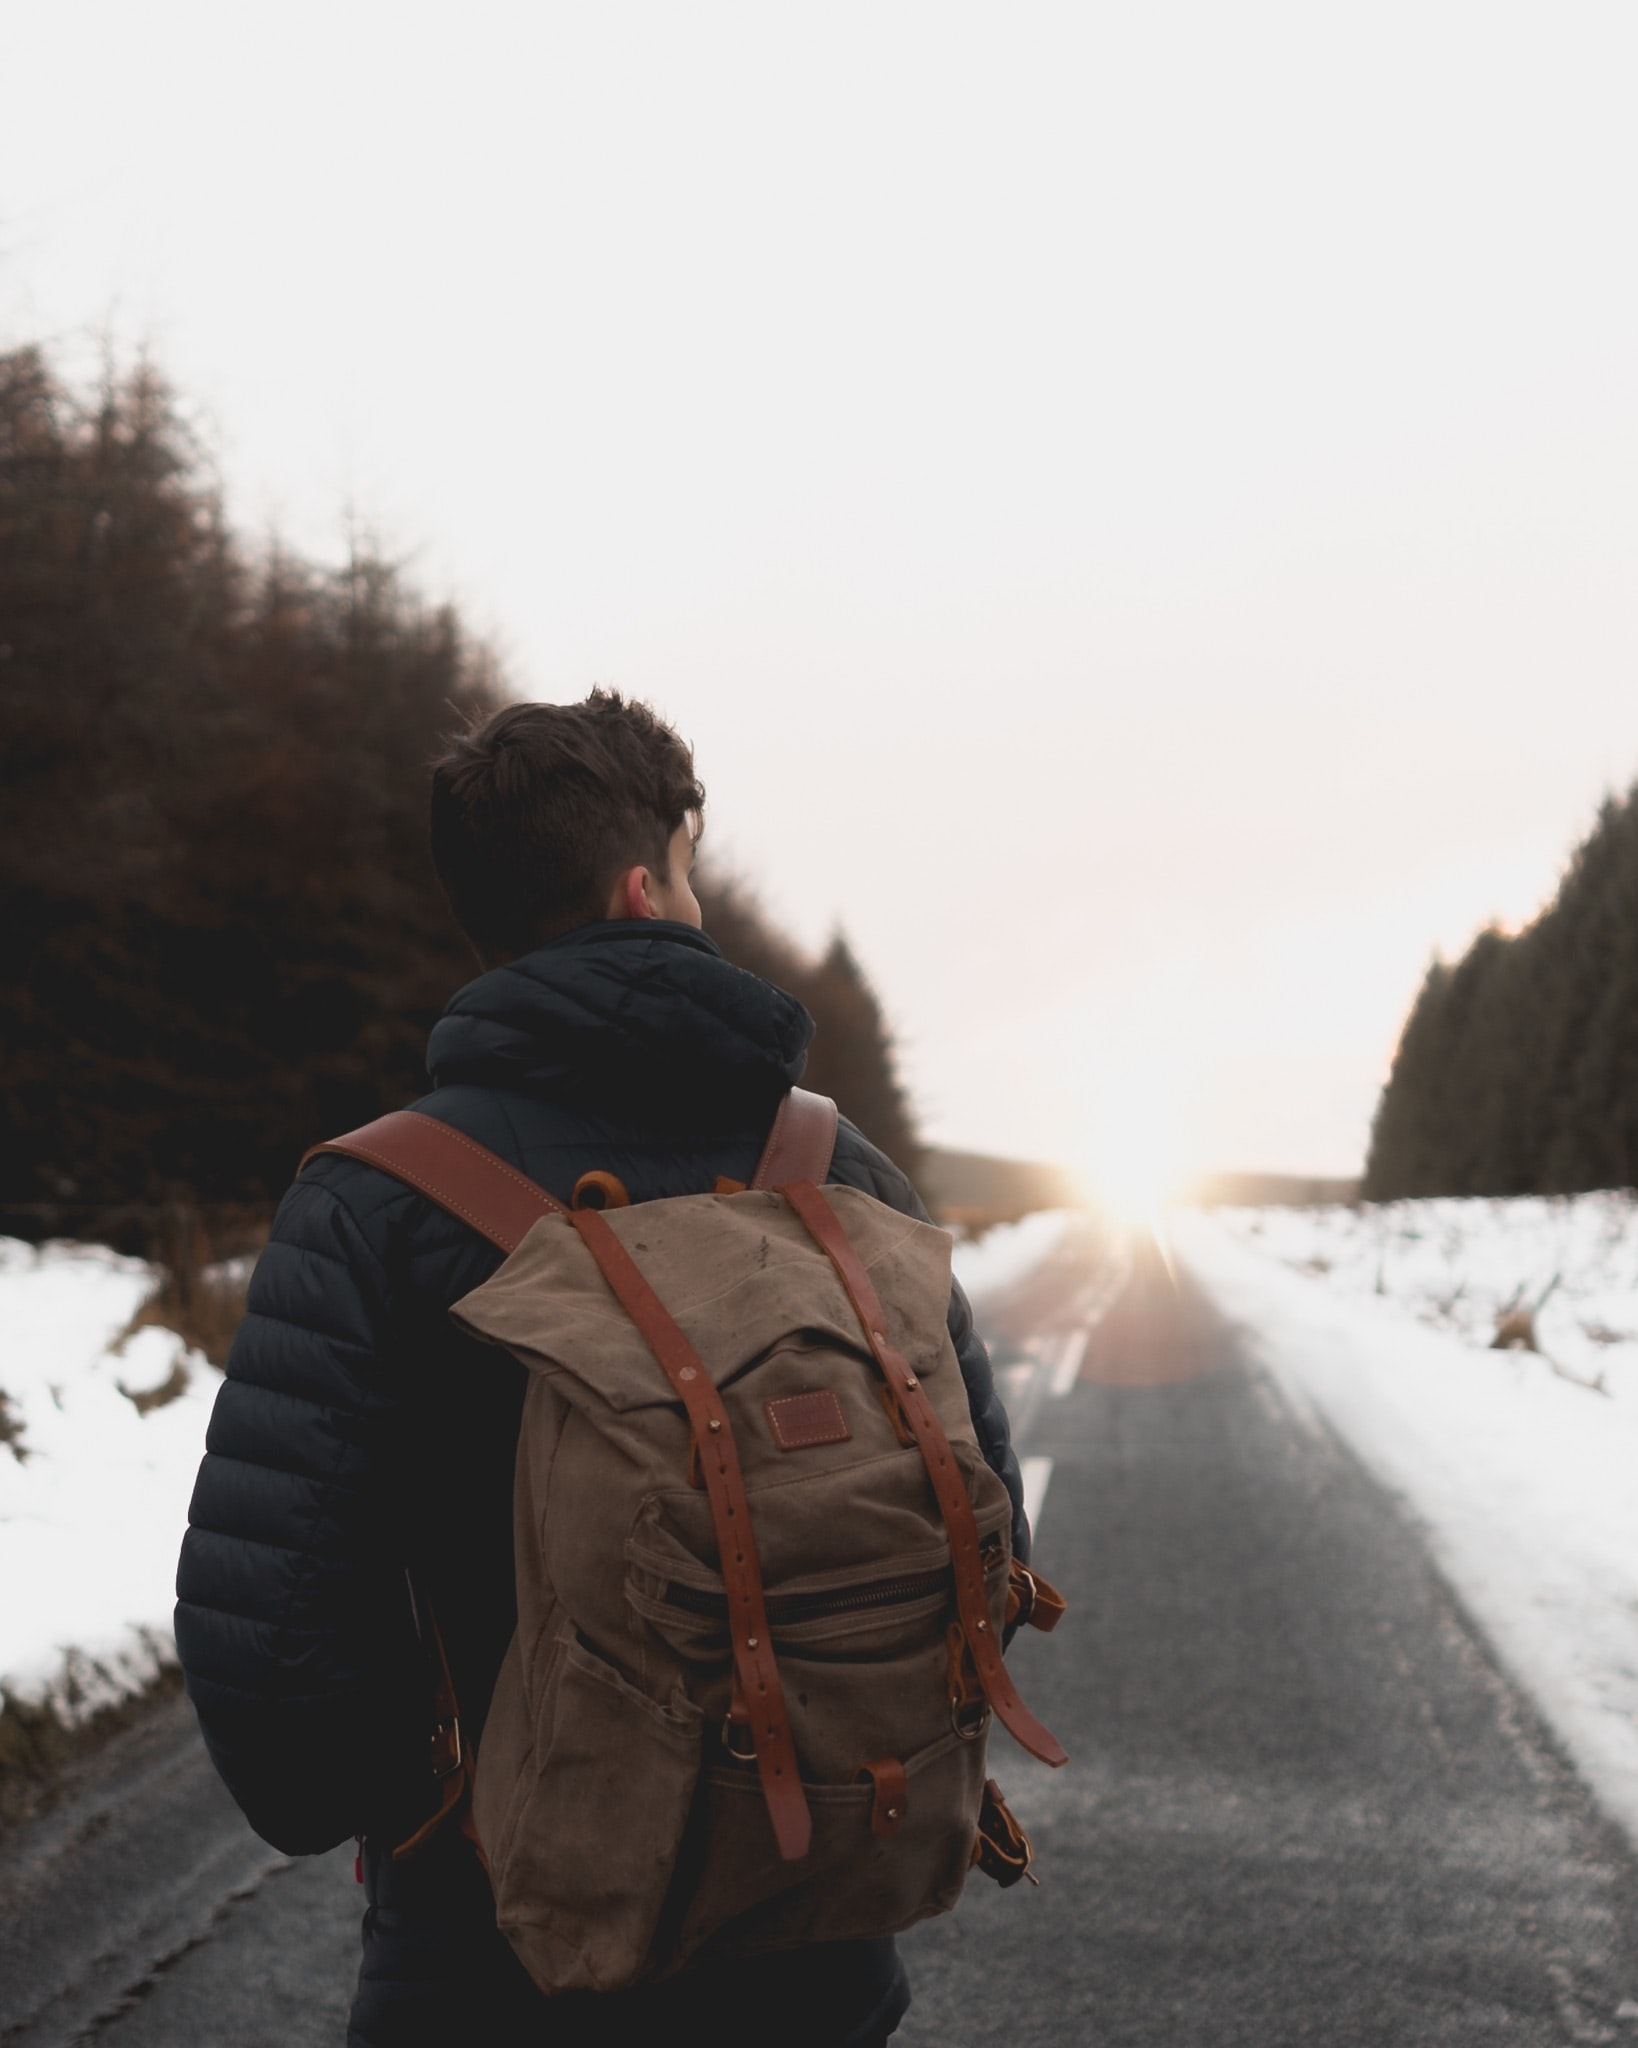 man with backpack standing in middle of road at daytime